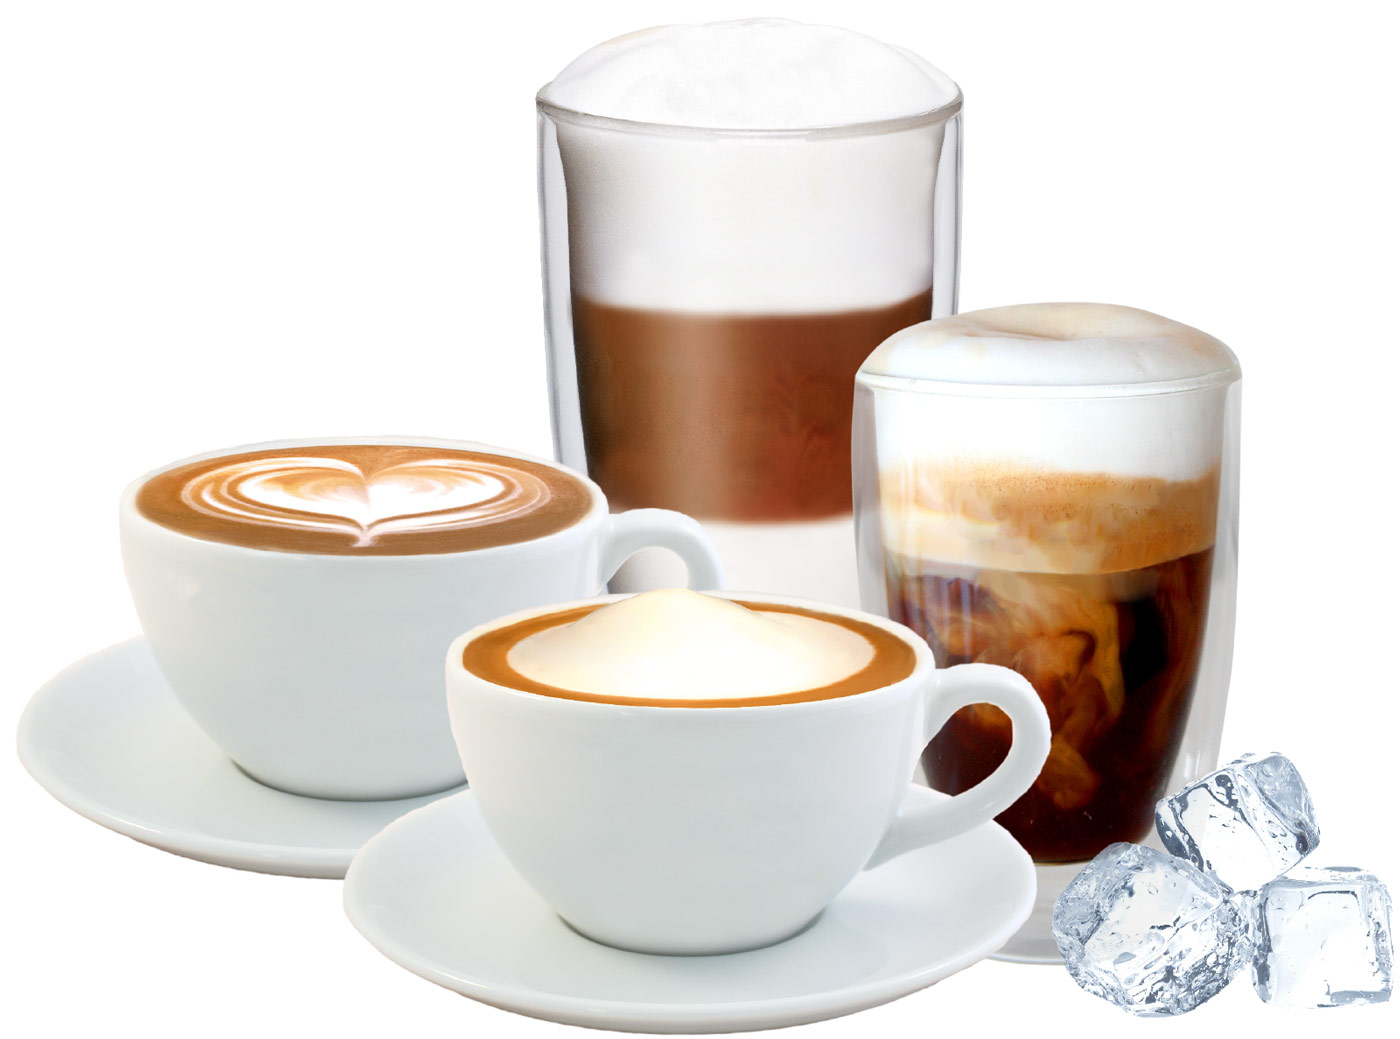 Miracle milk foam on demand hot and cold